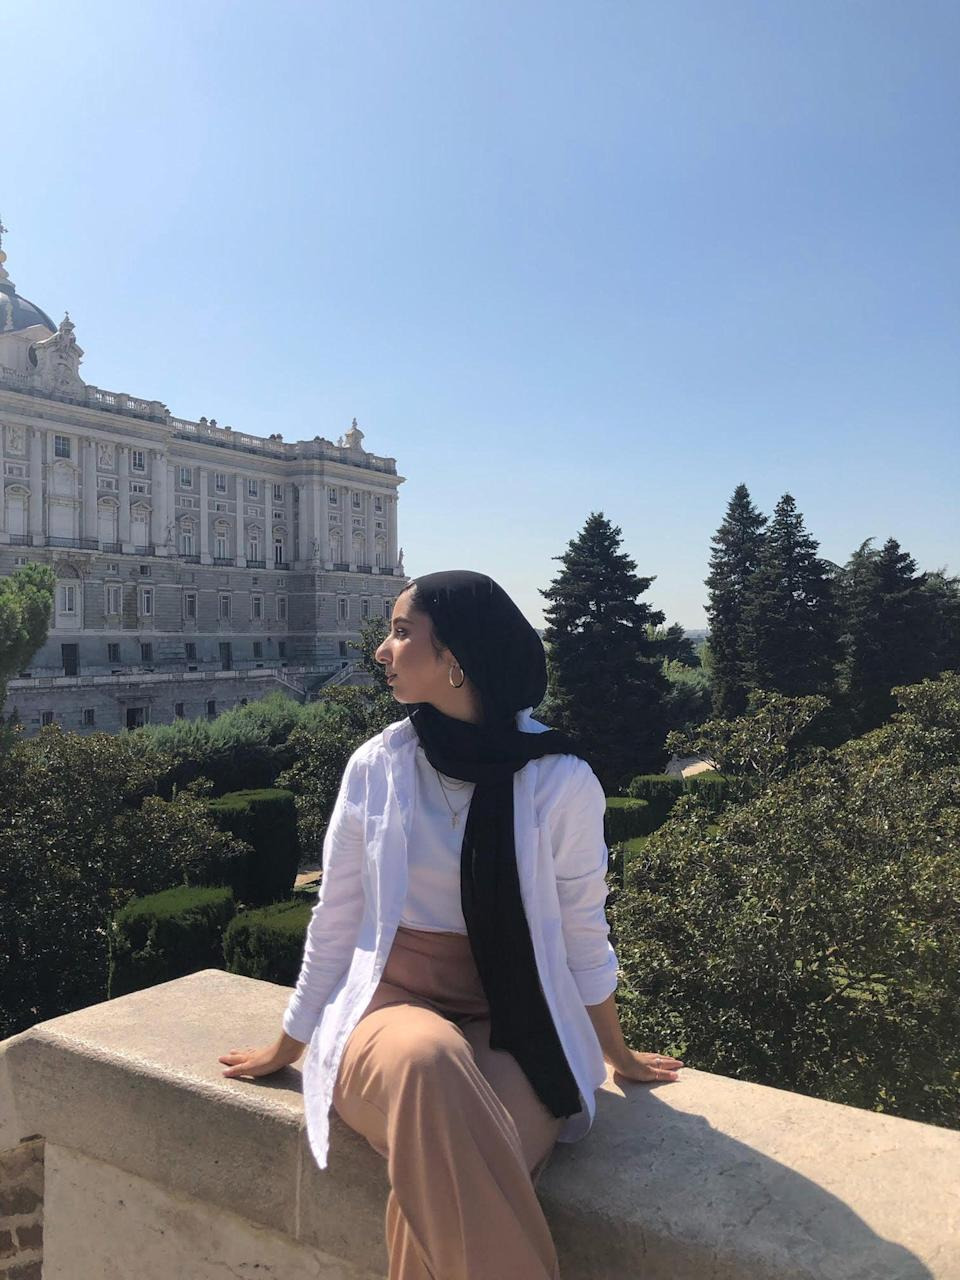 <h2>Furvah, 21, moved from the UK to Madrid, Spain in August 2019</h2><br>I had the option to study a semester of my course abroad with the Erasmus scheme (which has now ended post-Brexit, unfortunately) so I jumped at the chance after building the confidence to do so from moving to London from my hometown in the West Midlands for university.<br><br>I envisioned Spain to be very cultural, diverse and, of course, warm! I love warm weather. I was quite keen to challenge myself by learning a new language, too. I thought it would be quite diverse as it is a major capital city and I could potentially find a community there as a Muslim woman of colour.<br><br>It was quite overwhelming, intimidating and a bit of a culture shock. Having to navigate little things like grocery shopping, getting on public transport and asking for directions with my broken Spanish proved difficult for at least the first few weeks. <br><br>Madrid wasn't what I expected it to be. I imagined it to be like London regarding the diversity of the people who lived there, so when I often found myself as the only Muslim or woman of colour present, it made me feel alone and sometimes quite unsafe. Dealing with different levels of racism and Islamophobia was probably the hardest part, alongside homesickness and loneliness. <br><br>I was as open as possible so I could meet more people! Going to different welcome events, language exchanges, salsa classes and more all helped me to reach outside my comfort zone and meet new people. I also built friendships with other international students in my flat and university, which helped me a lot as we were all experiencing similar things. <br><br>I was/am in constant contact with family and friends via social media, messaging and FaceTime. Some people I've drifted from or am no longer as close to, but I think that's a natural part of growing up and moving away. <br><br>I wish I'd had more faith in my strength and abilities and taken time to take care of myself when th